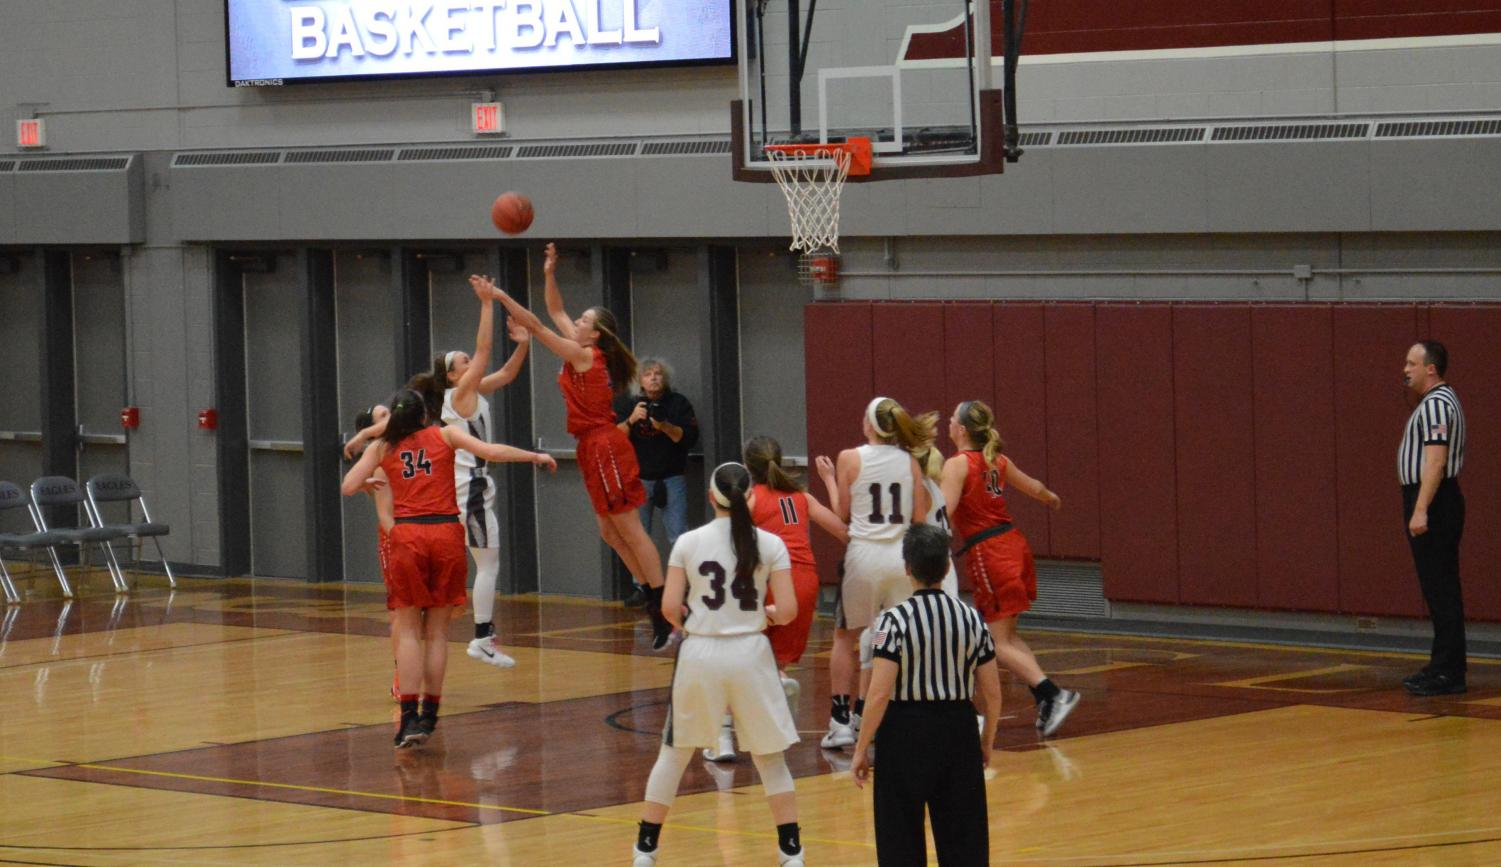 Eagles junior Kylee Marks (11) positions for the rebound in Wednesday's victory over UWRF